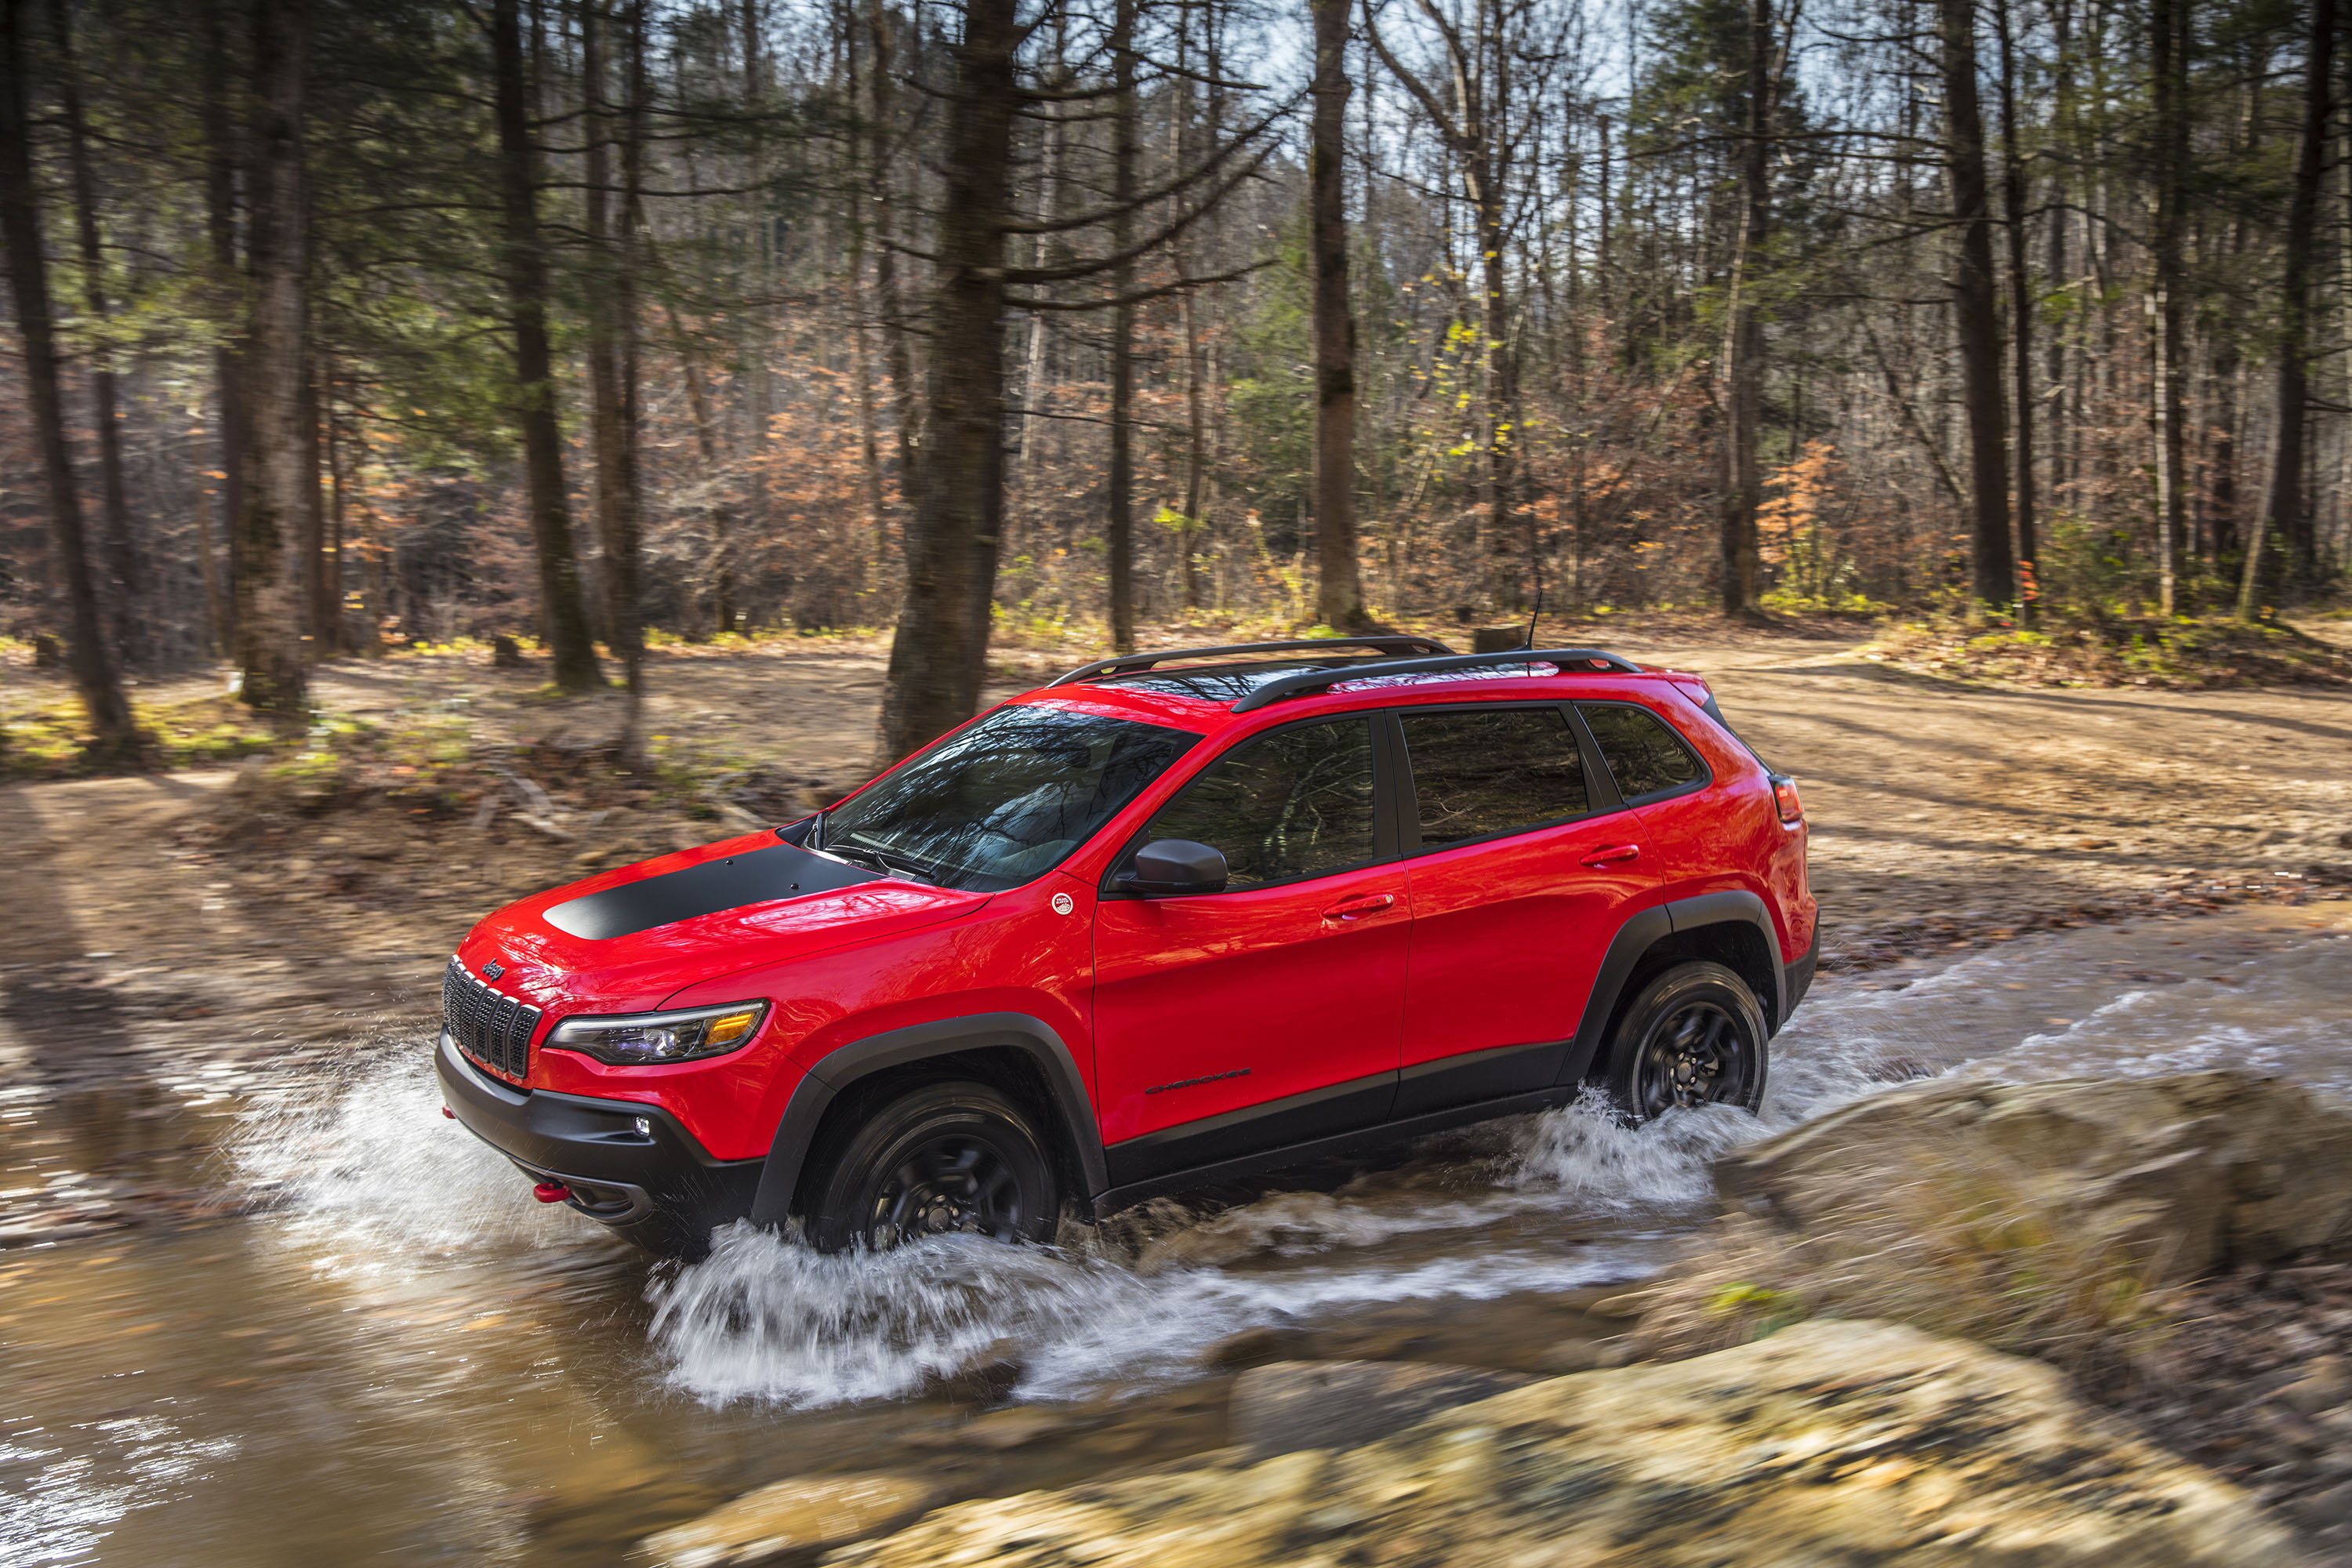 Wallpaper Of The Day: 2019 Jeep Grand Cherokee Pictures ...